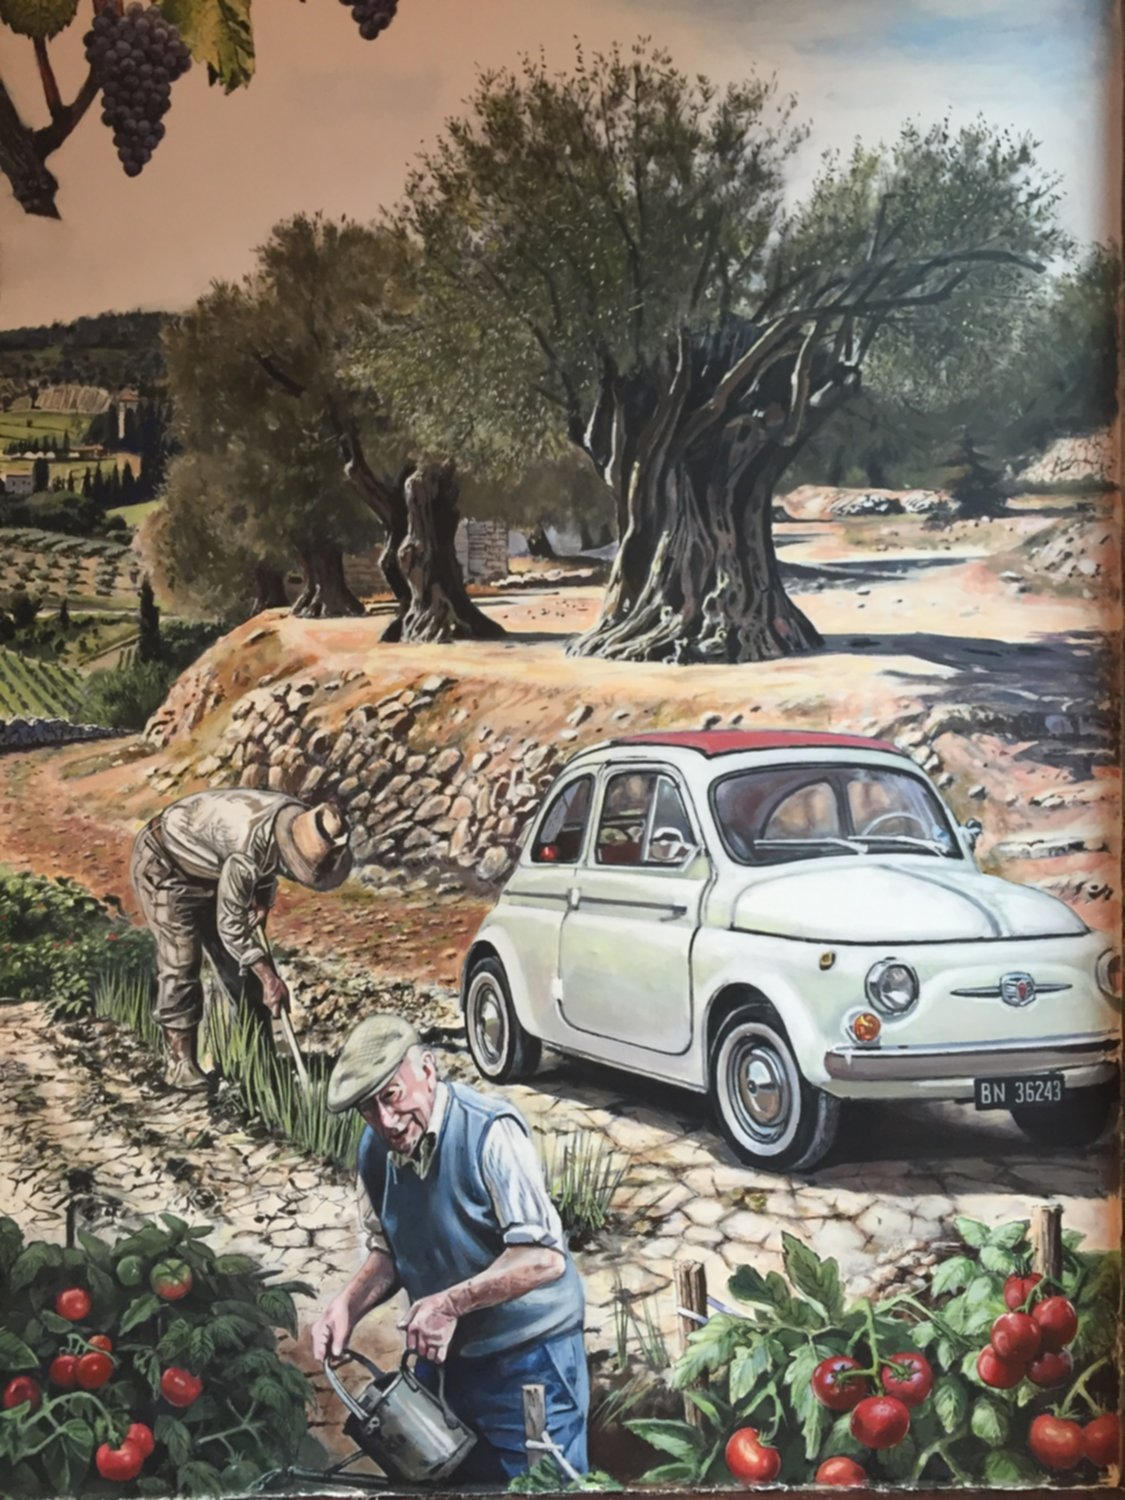 Mural of Tuscany villagers painted in the restaurant Bar Italia, Edinburgh, UK